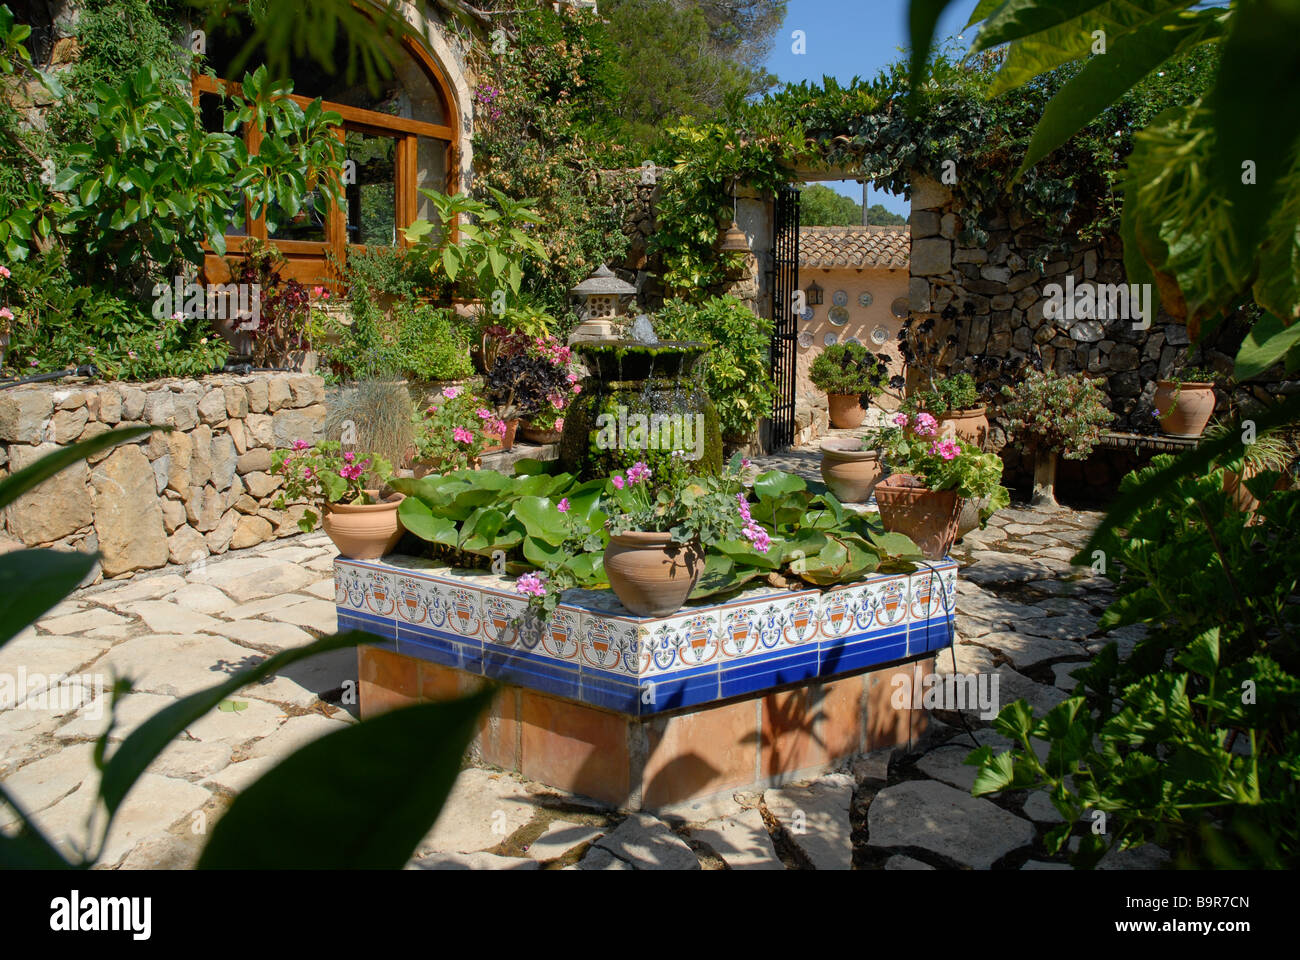 Spanish Courtyard Garden With Formal Pond And Water